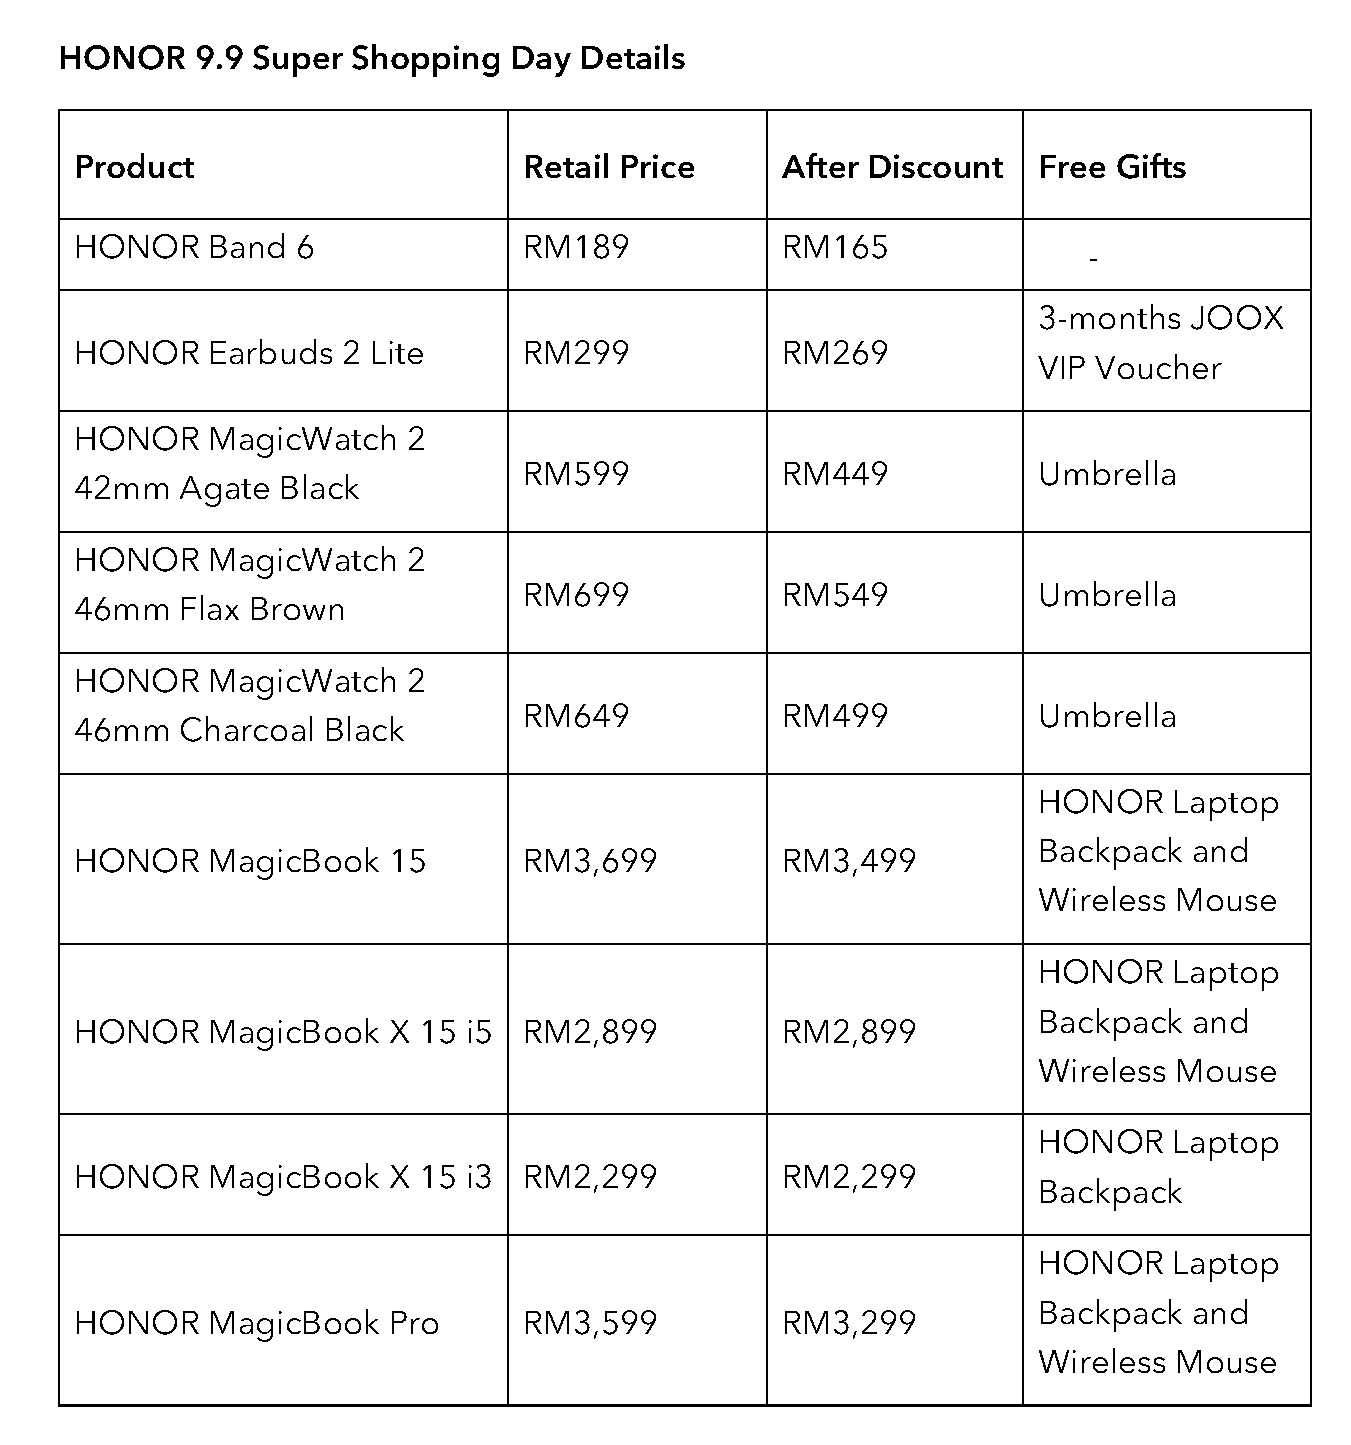 HONOR Malaysia Rewards Fans With Up To RM 300 Discounts And Free Gifts On 9.9 Super Shopping Day 20